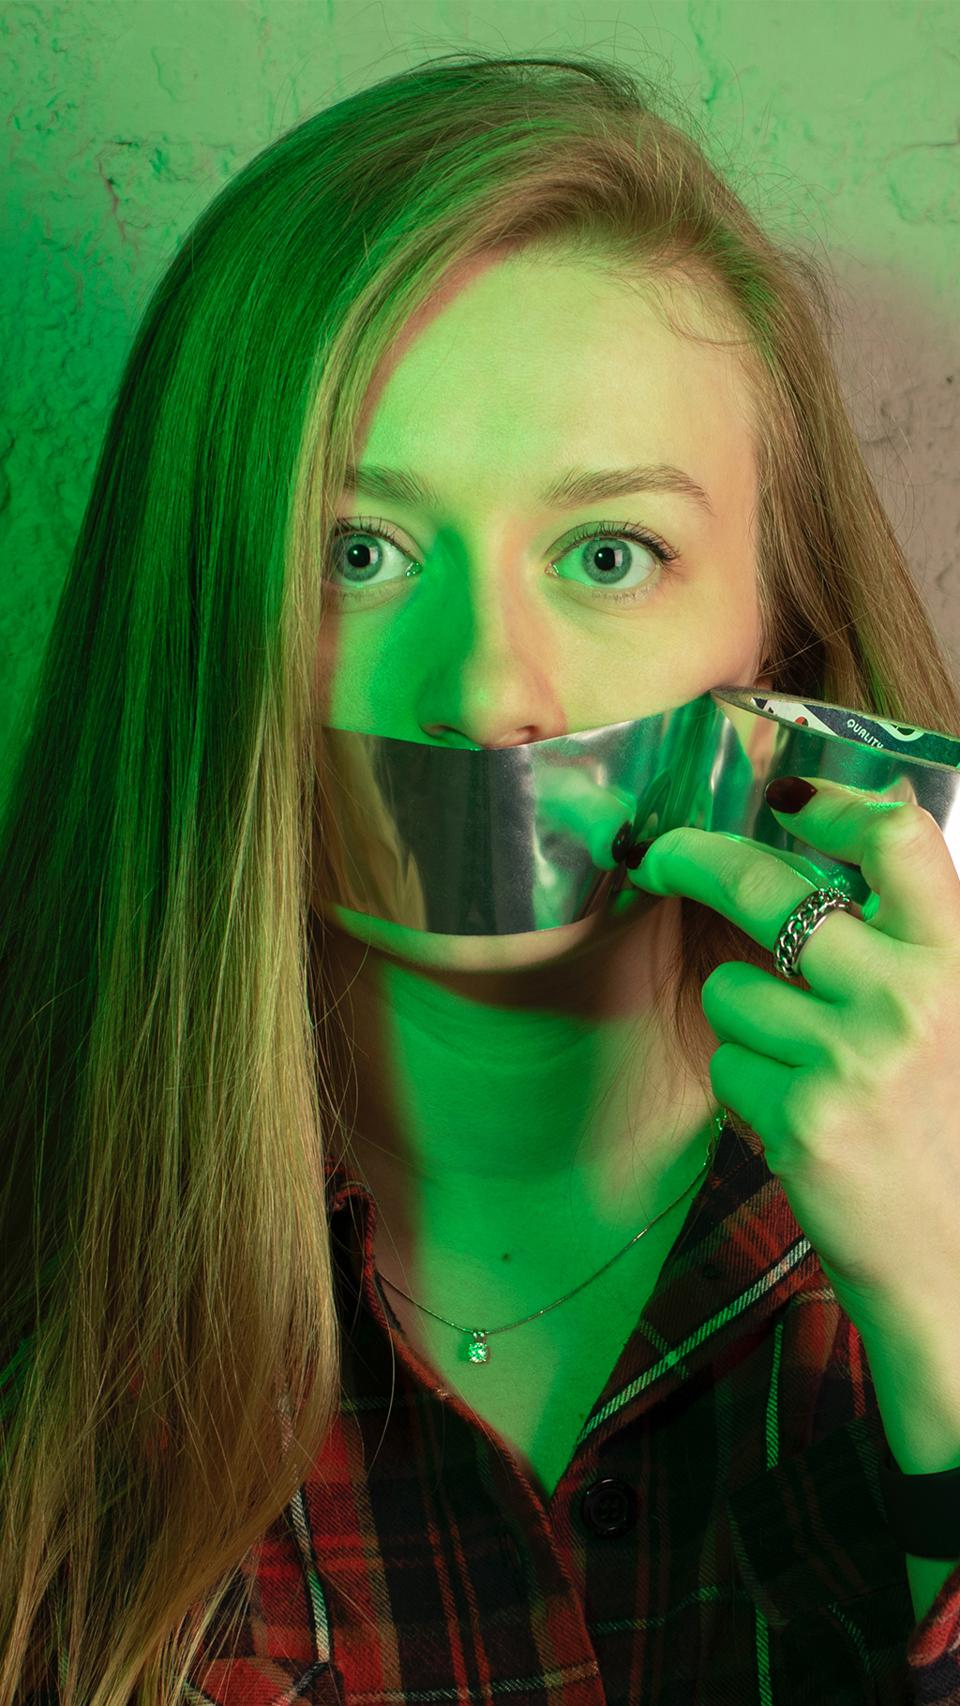 A young woman tapes her own mouth in a self-censorship attempt